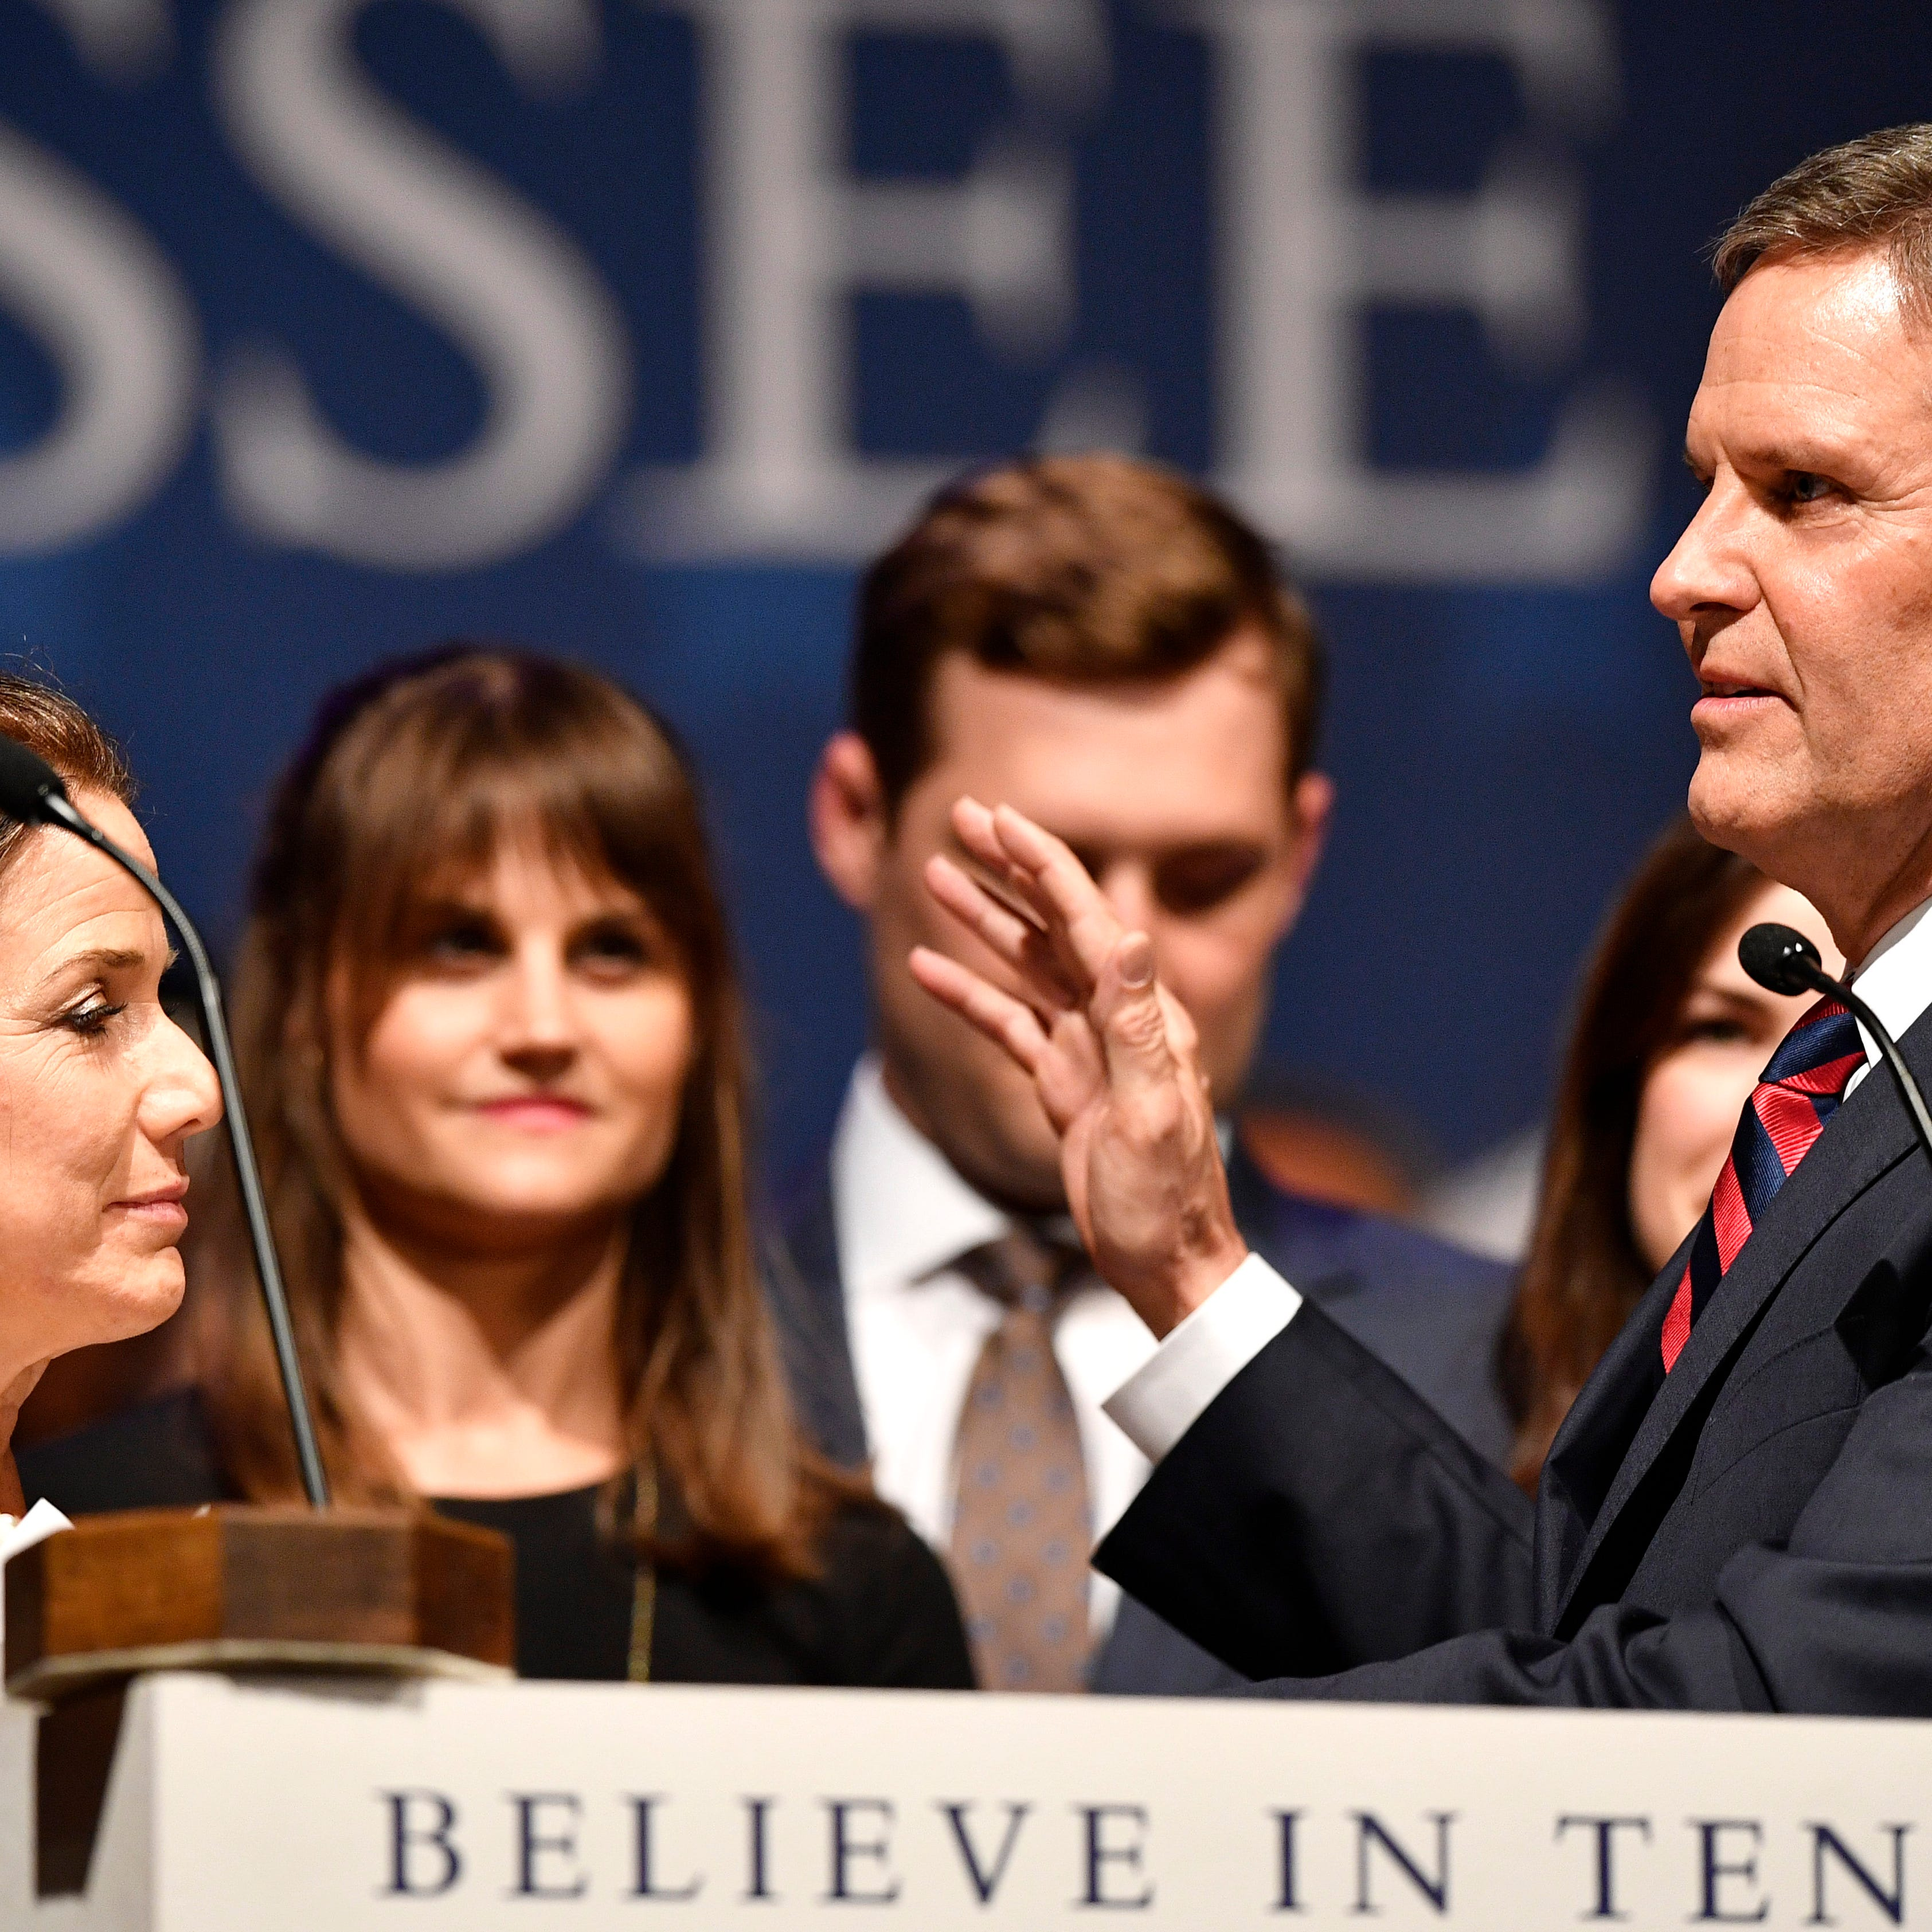 Bill Lee sworn in as Tennessee's 50th governor, nearly 2 years after long-shot bid